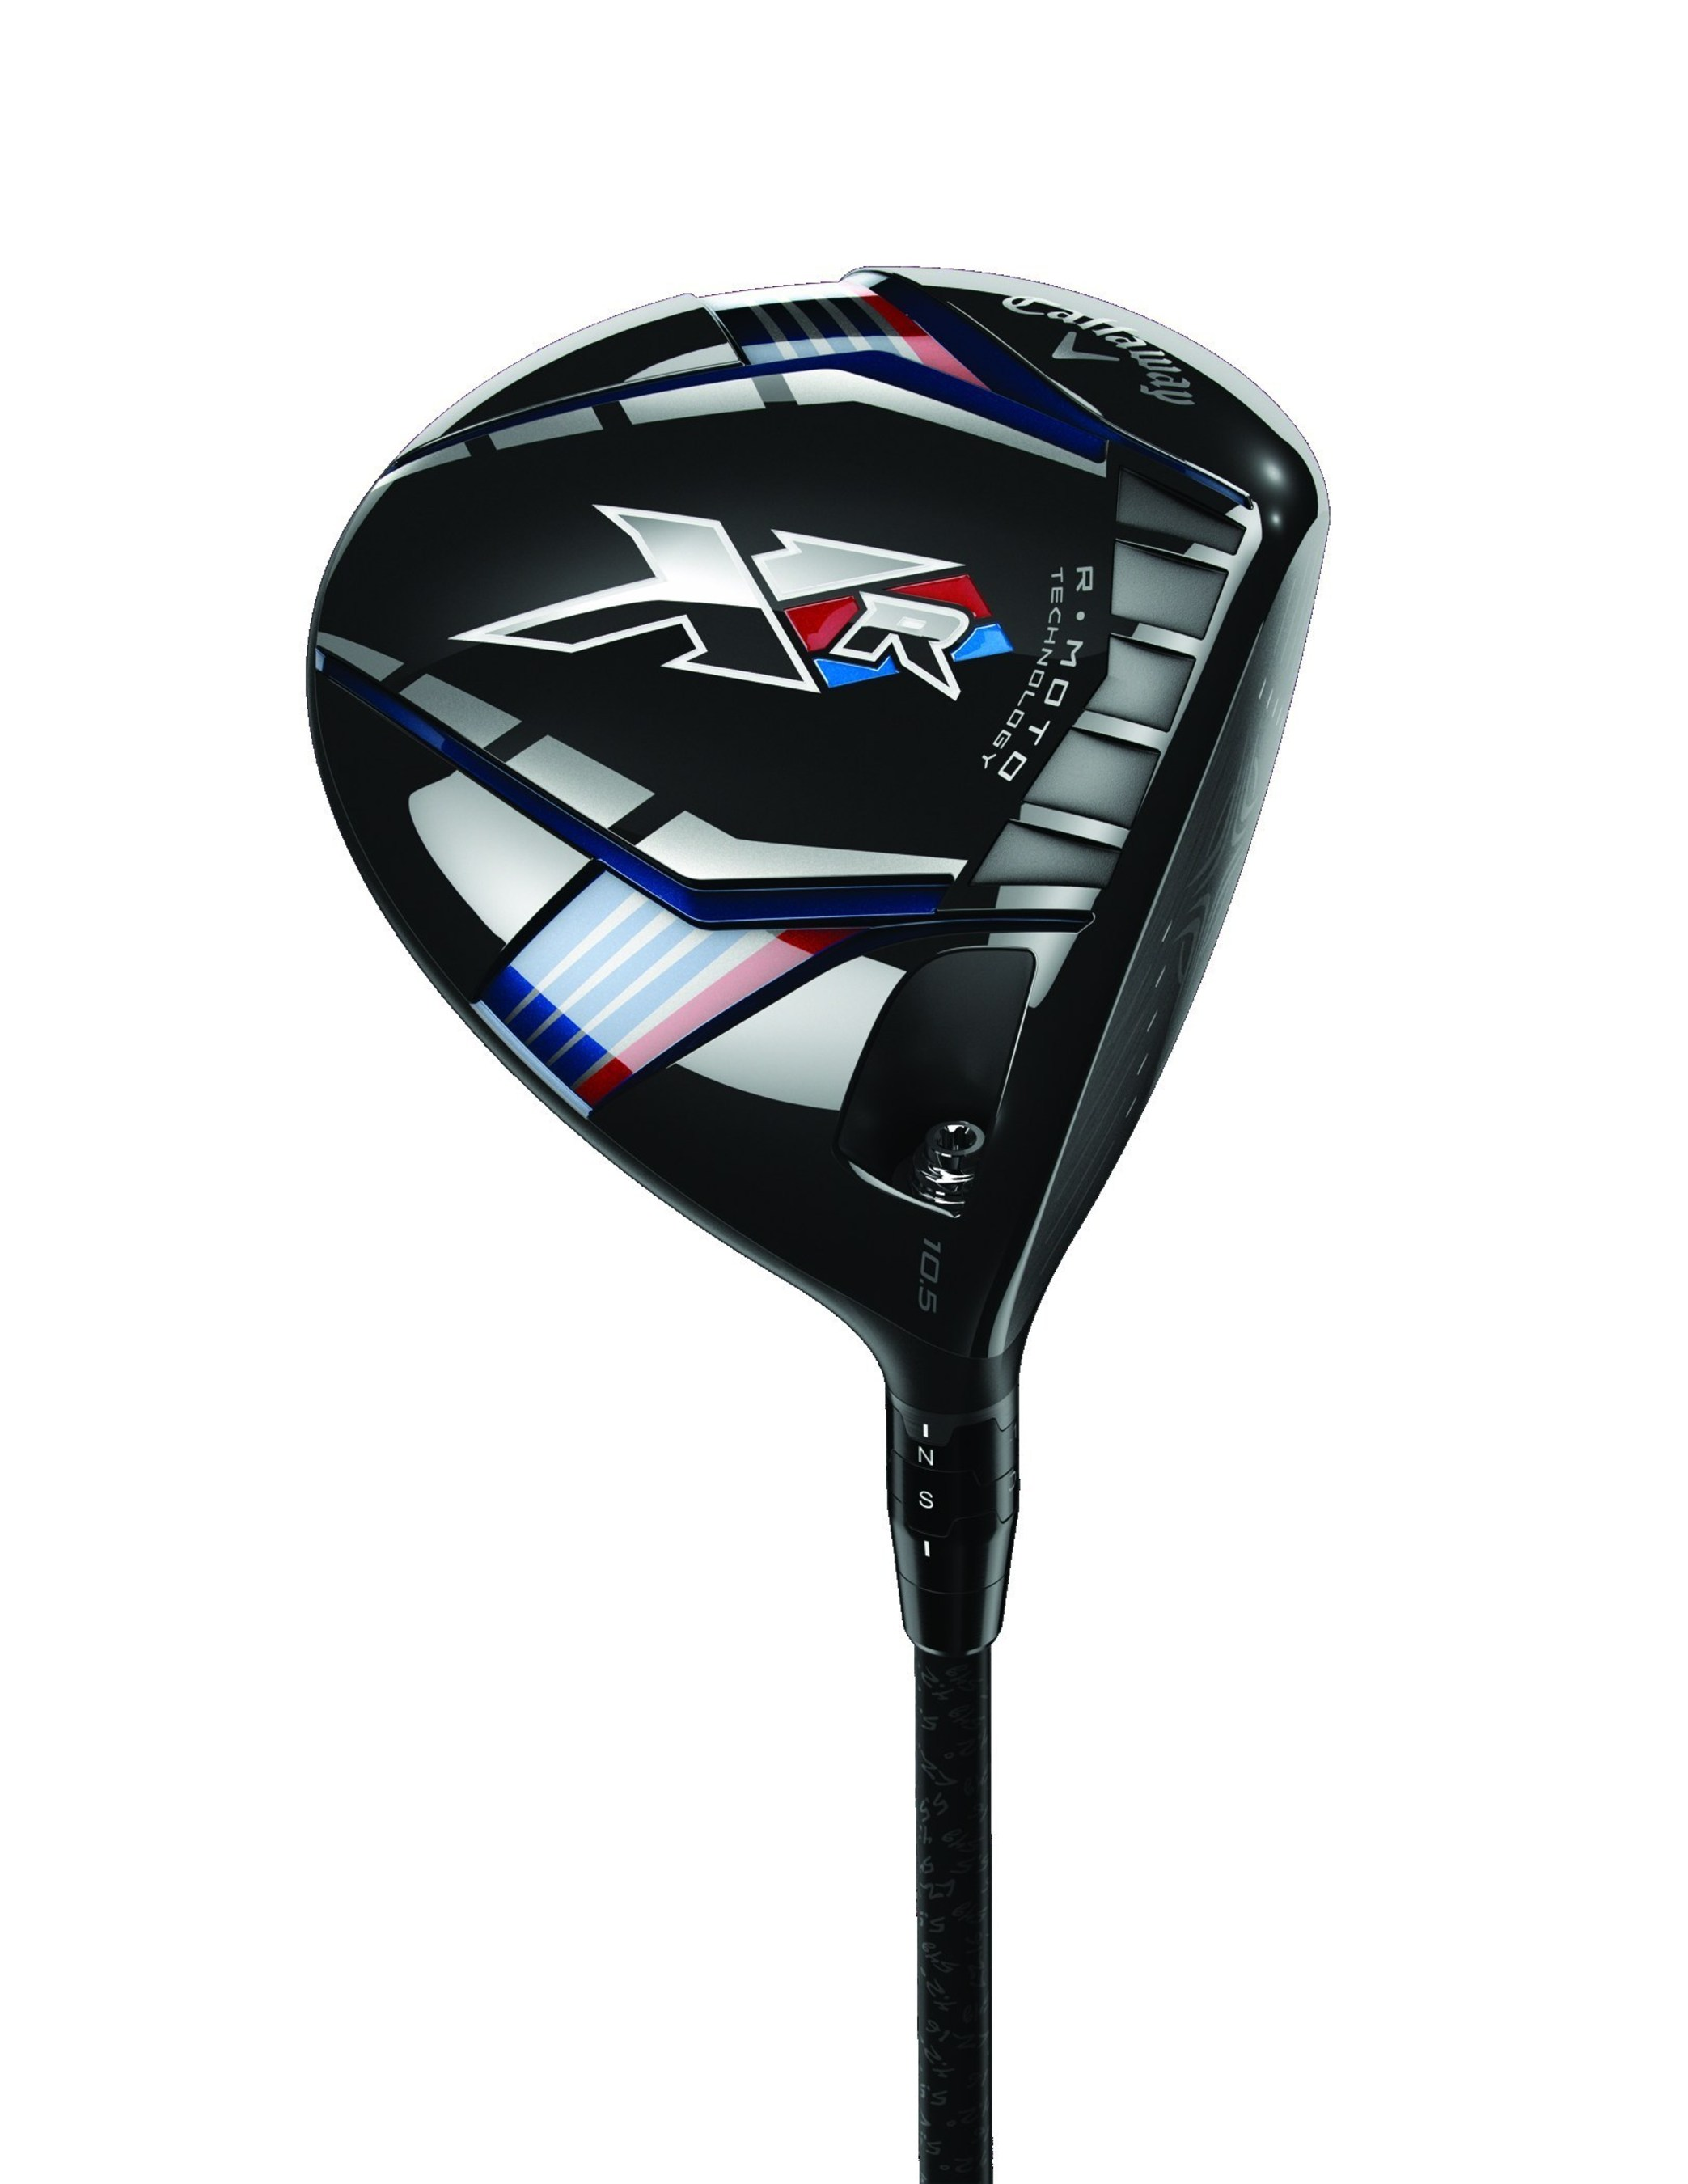 Callaway Golf Company today announced a new line of golf clubs built for outrageous speed: the XR Drivers, XR Fairway Woods, XR Hybrids and the XR Irons. The new clubs feature innovations in each product category that promote speed and power.